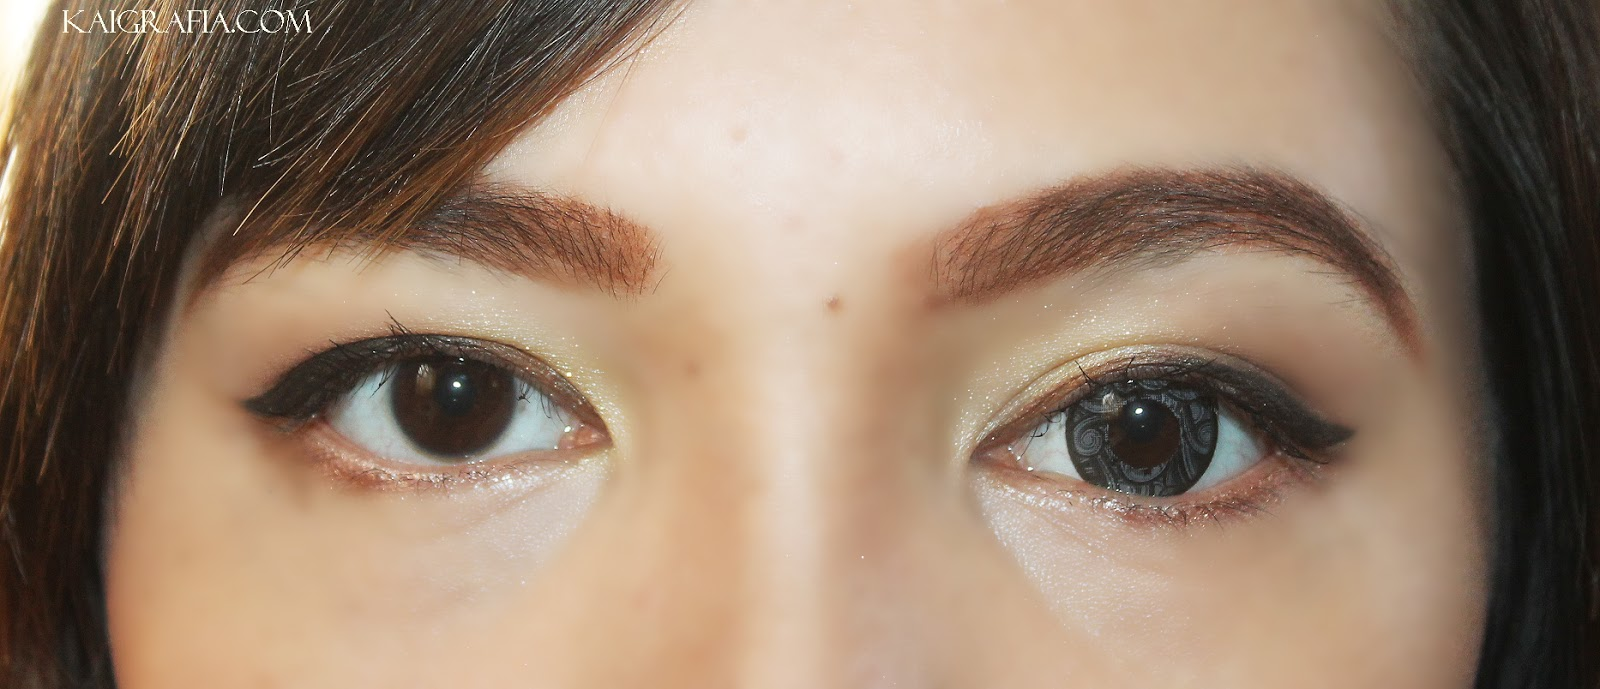 With and without circle lenses on eyes